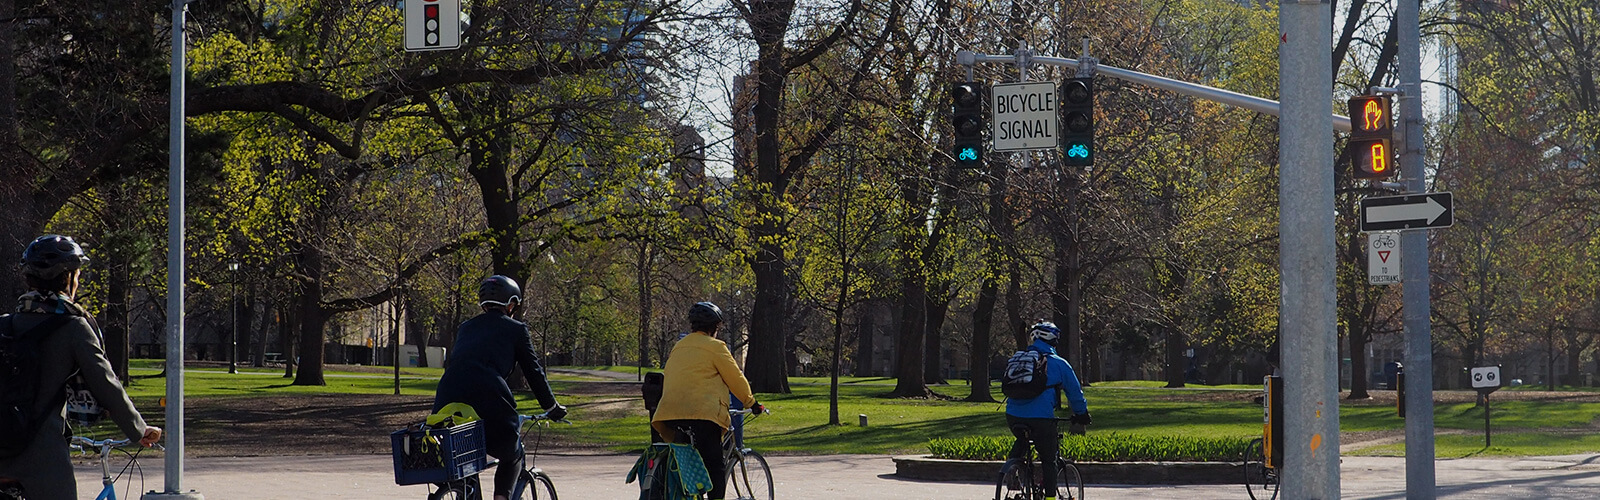 Four cyclists pedal across Queen's Park Crescent West toward Queen's Park, at a bicycle traffic light. The park ahead of them is lush and green. Highrise buildings poke through from behind the budding spring trees in the park.